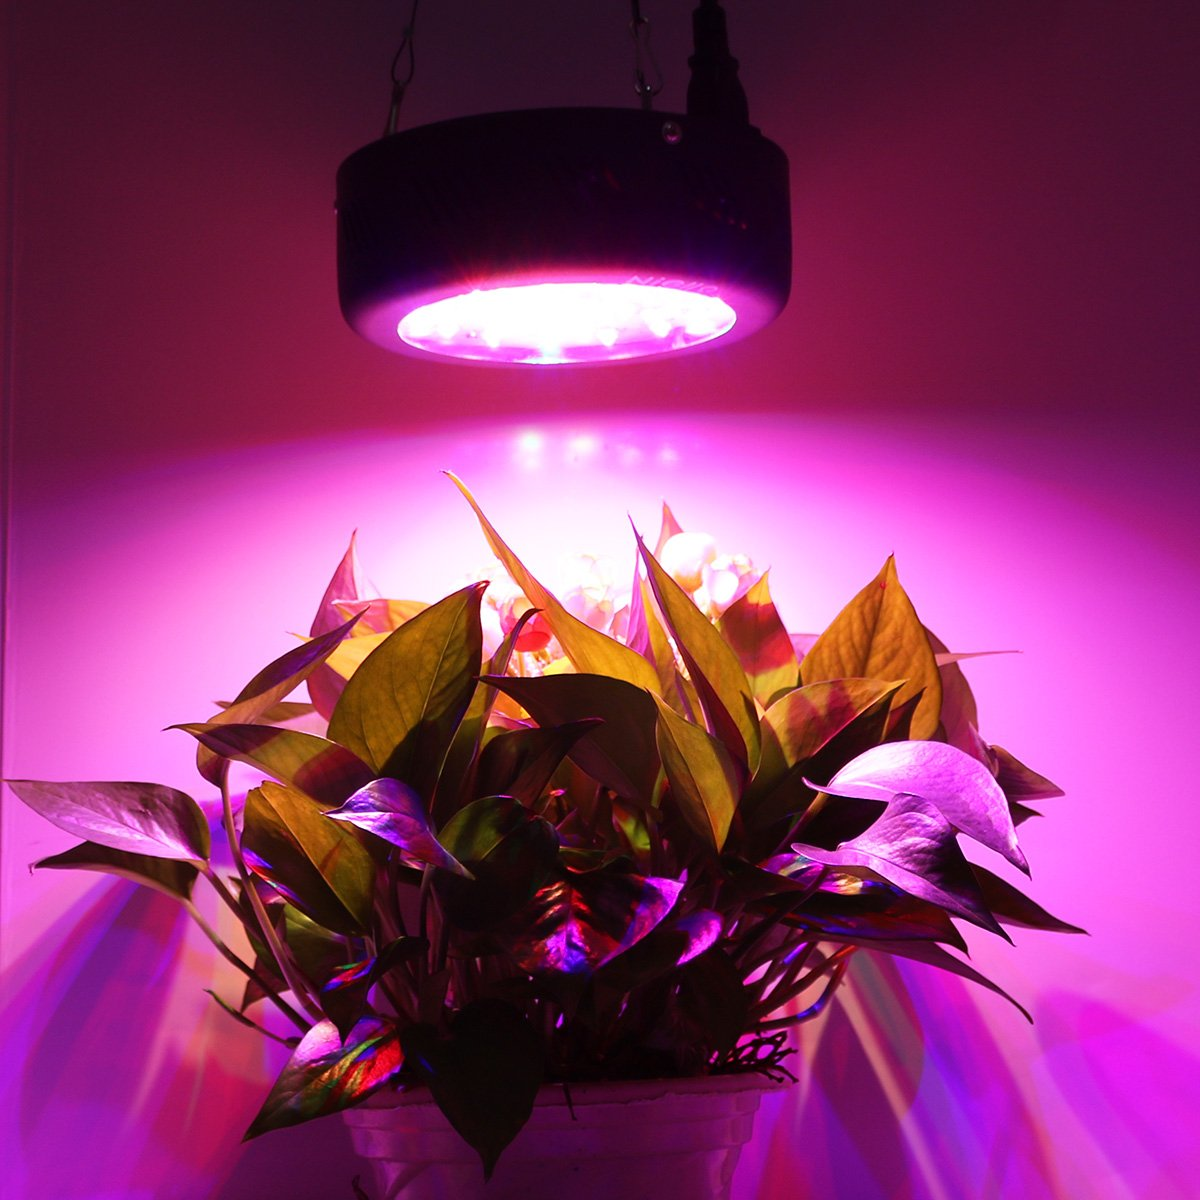 KINGBO New UFO LED Grow Light 150W Full Spectrum LED Plant Light with CREE COB UV IR LEDs and Switch for Indoor Greenhouse Hydroponic Plants Seeding Growing and Flowering KINGBO LED